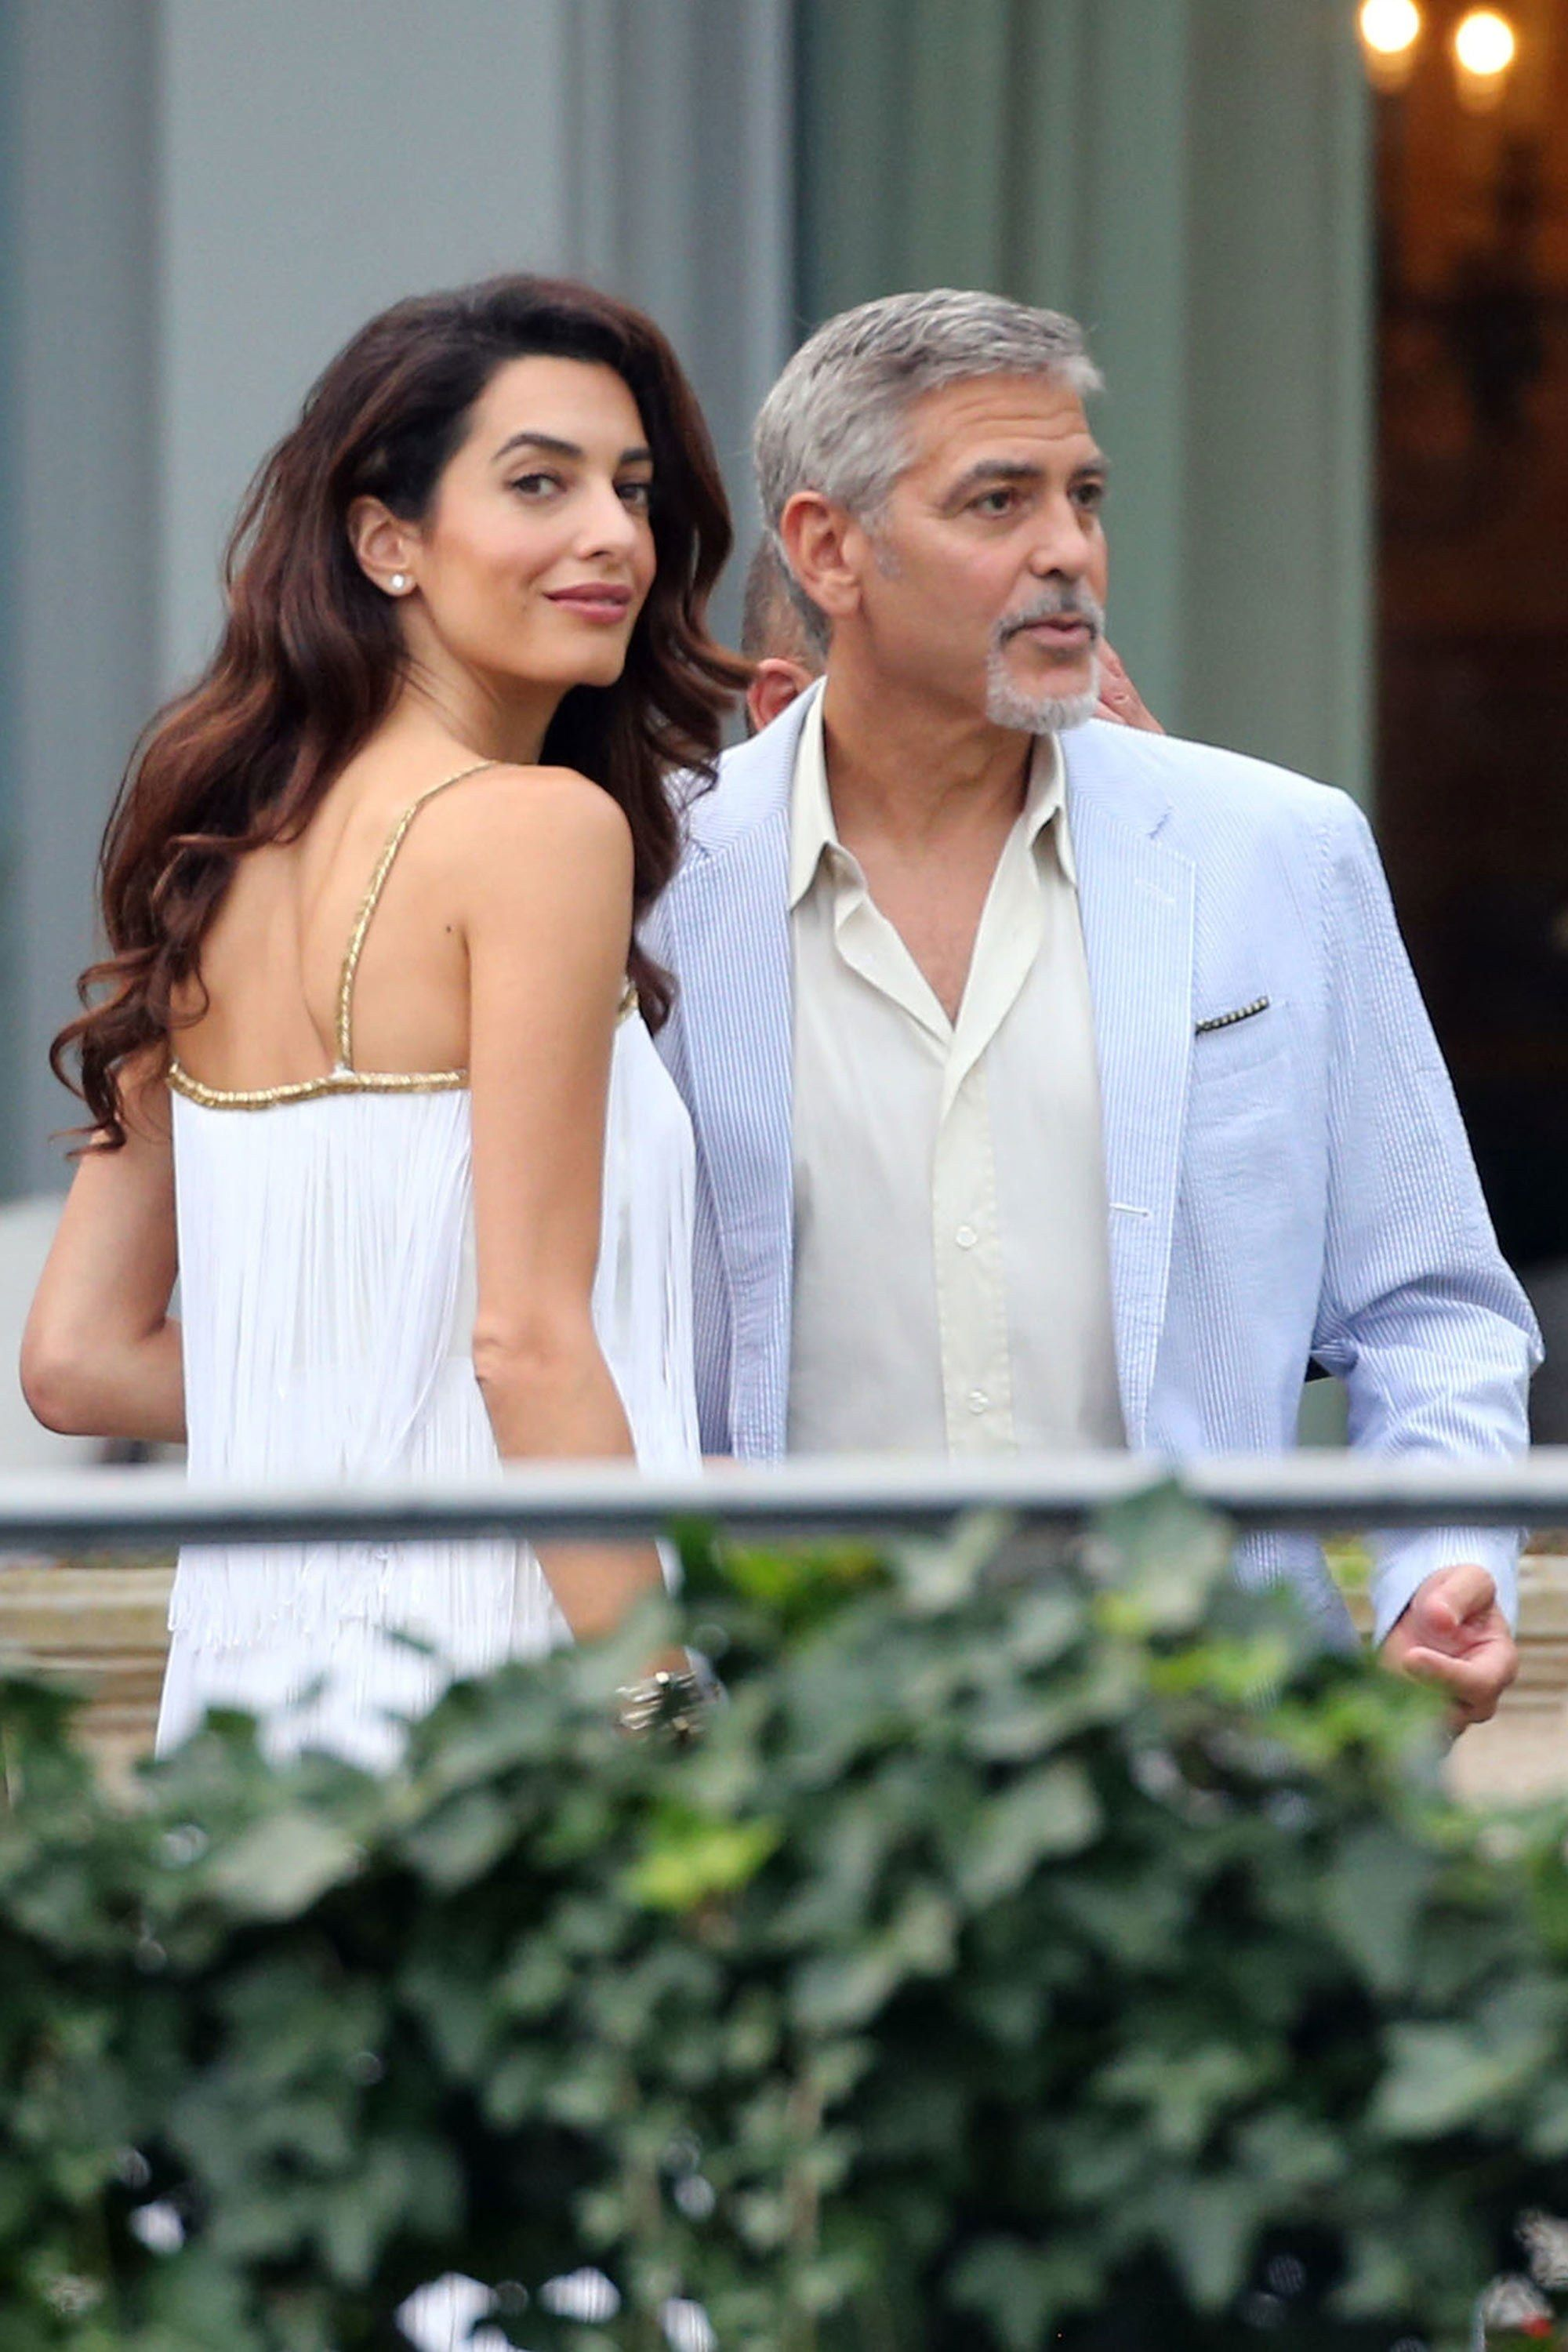 George And Amal Clooney S Twins Spotted In Public For The First Time On A Private Jet To Italy Amal Clooney Celebrity Style Celebrities